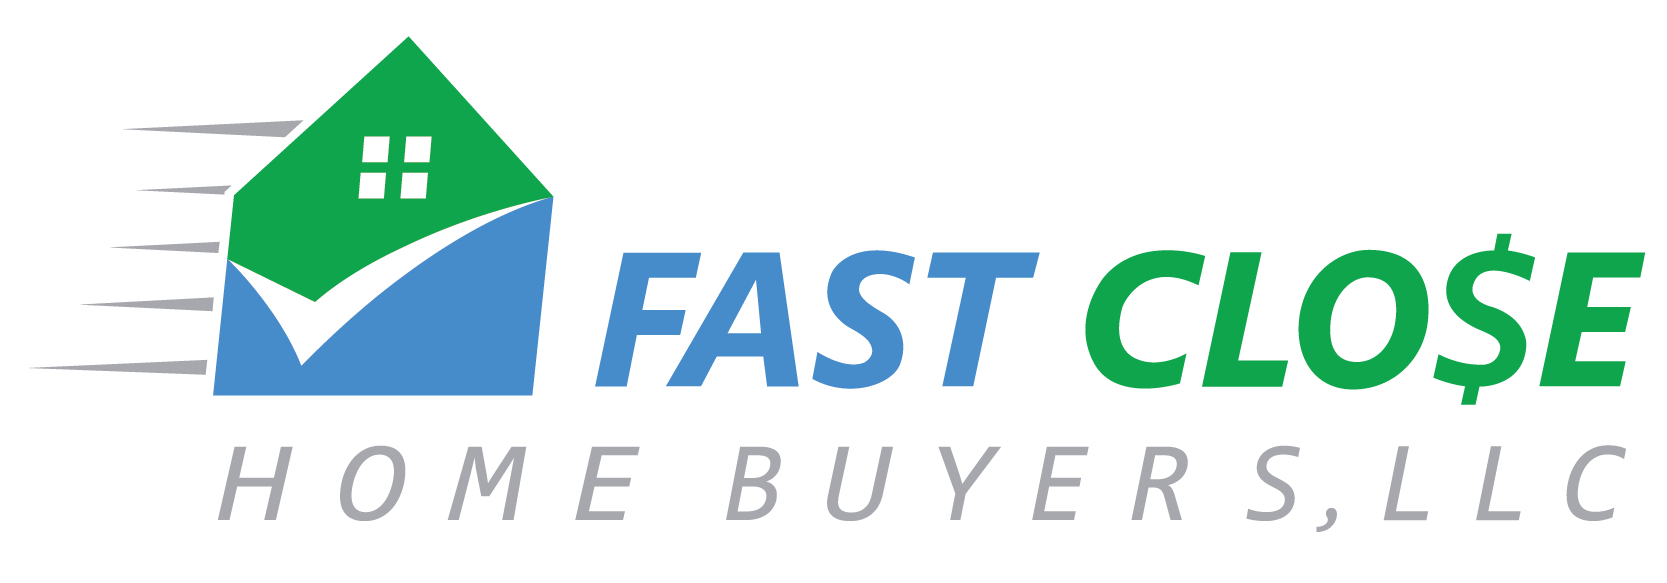 Fast Close Home Buyers logo